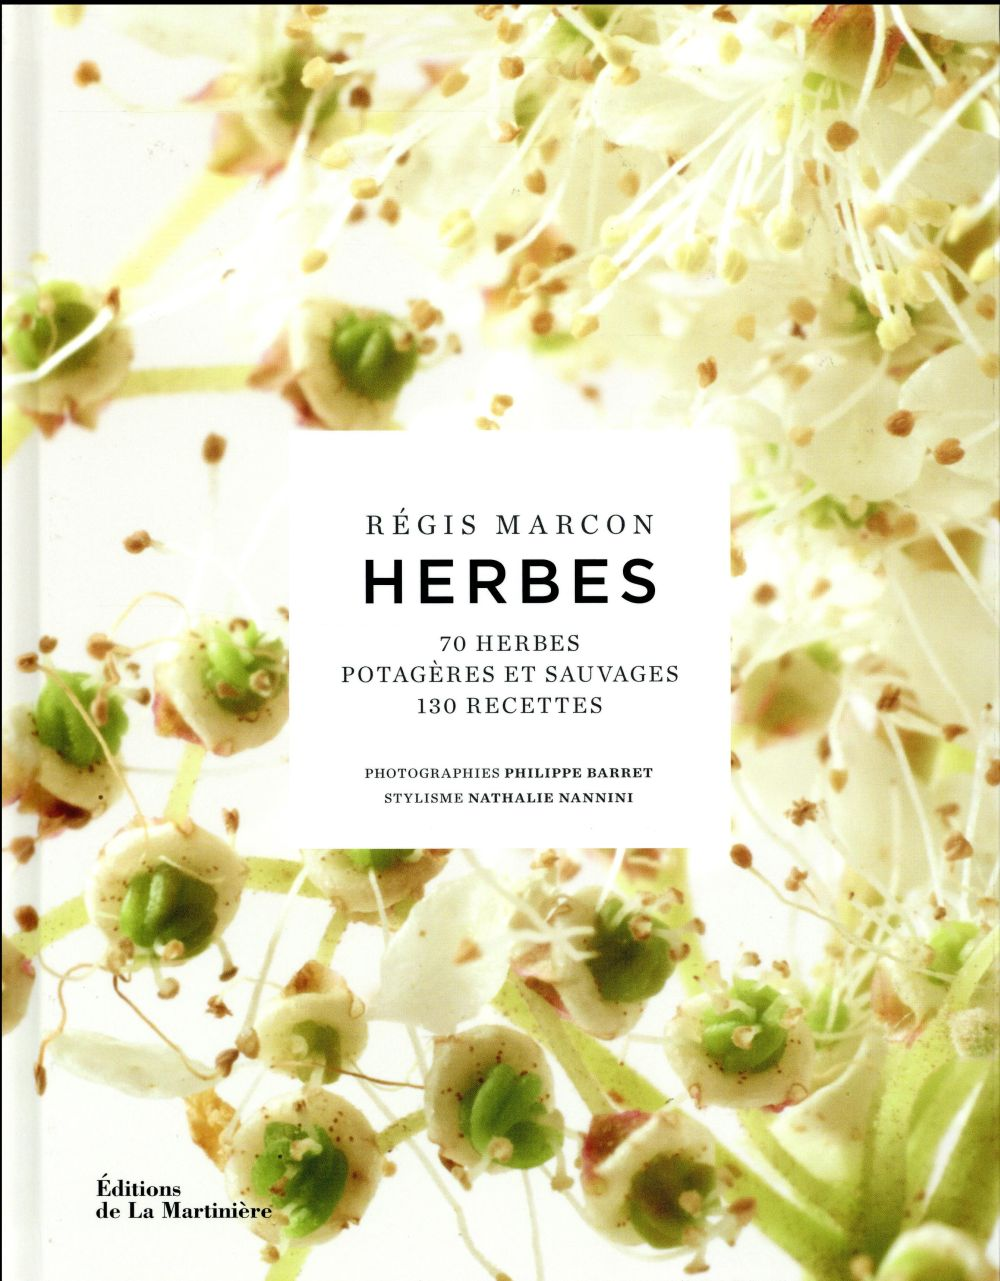 HERBES. 70 HERBES POTAGERES ET SAUVAGES,130 RECETTES